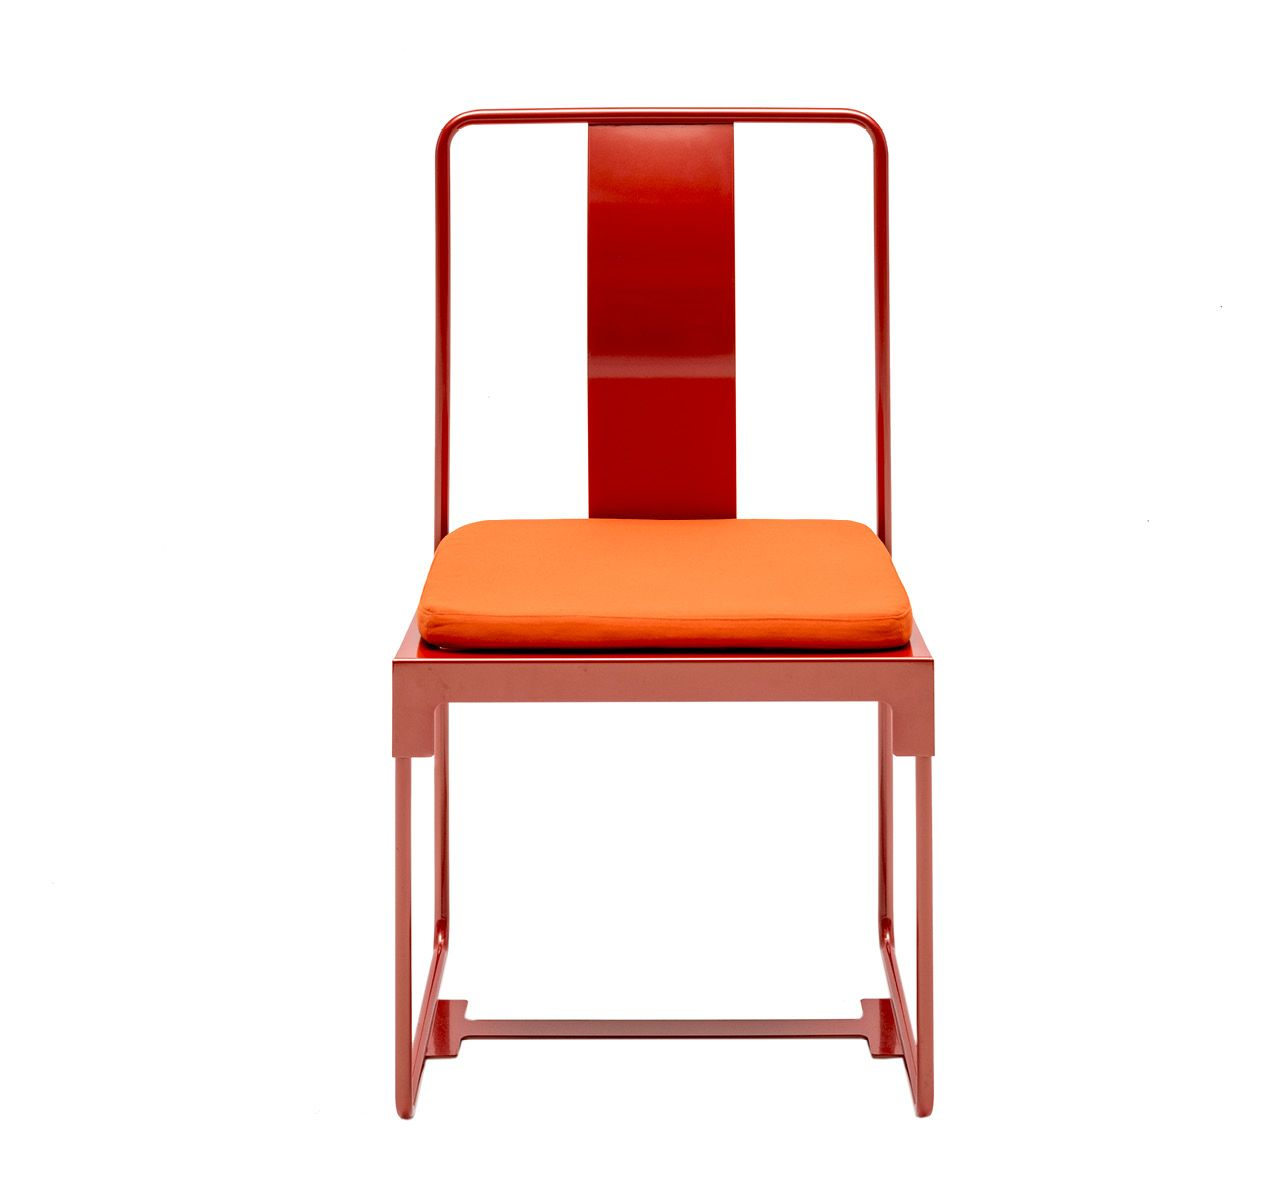 MINGX - Outdoor Chair Orange